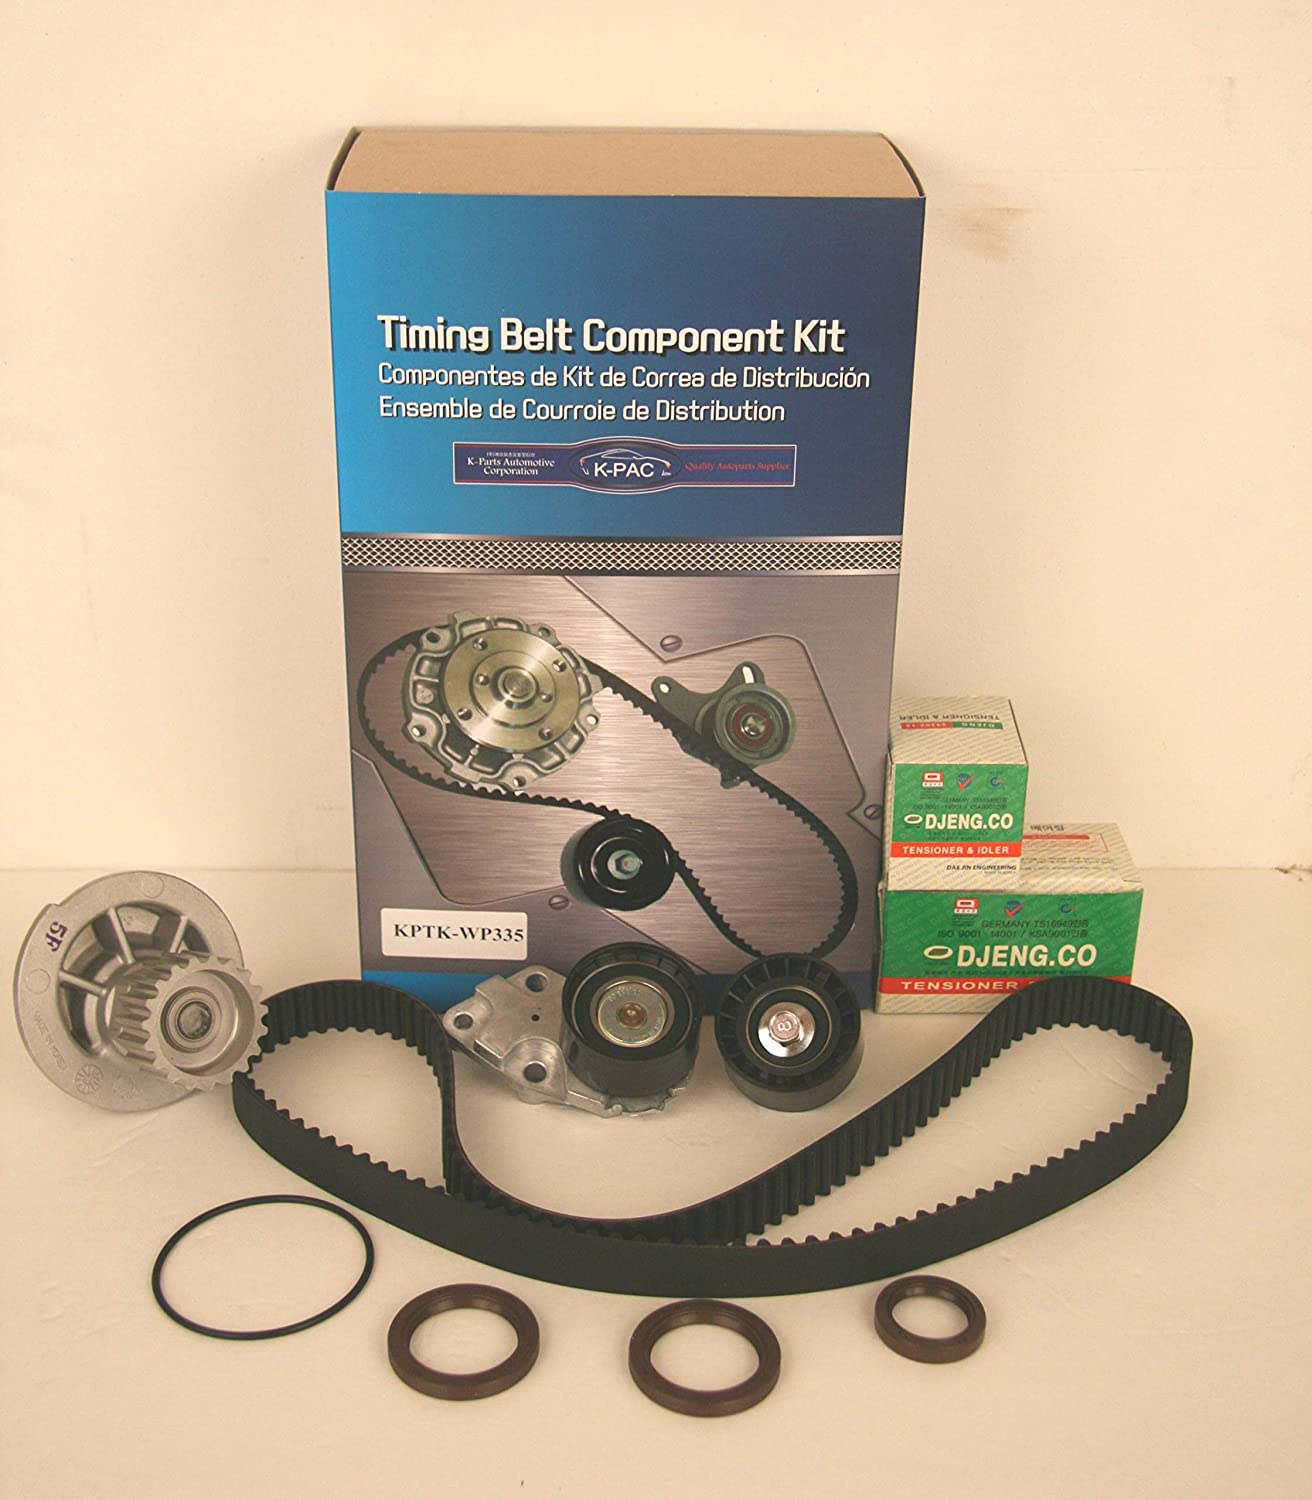 GENUINE Timing Belt Kit with WATER PUMP for 99-08 Daewoo Lanos Chevrolet Aveo Aveo5 1.6L KPTKWP335